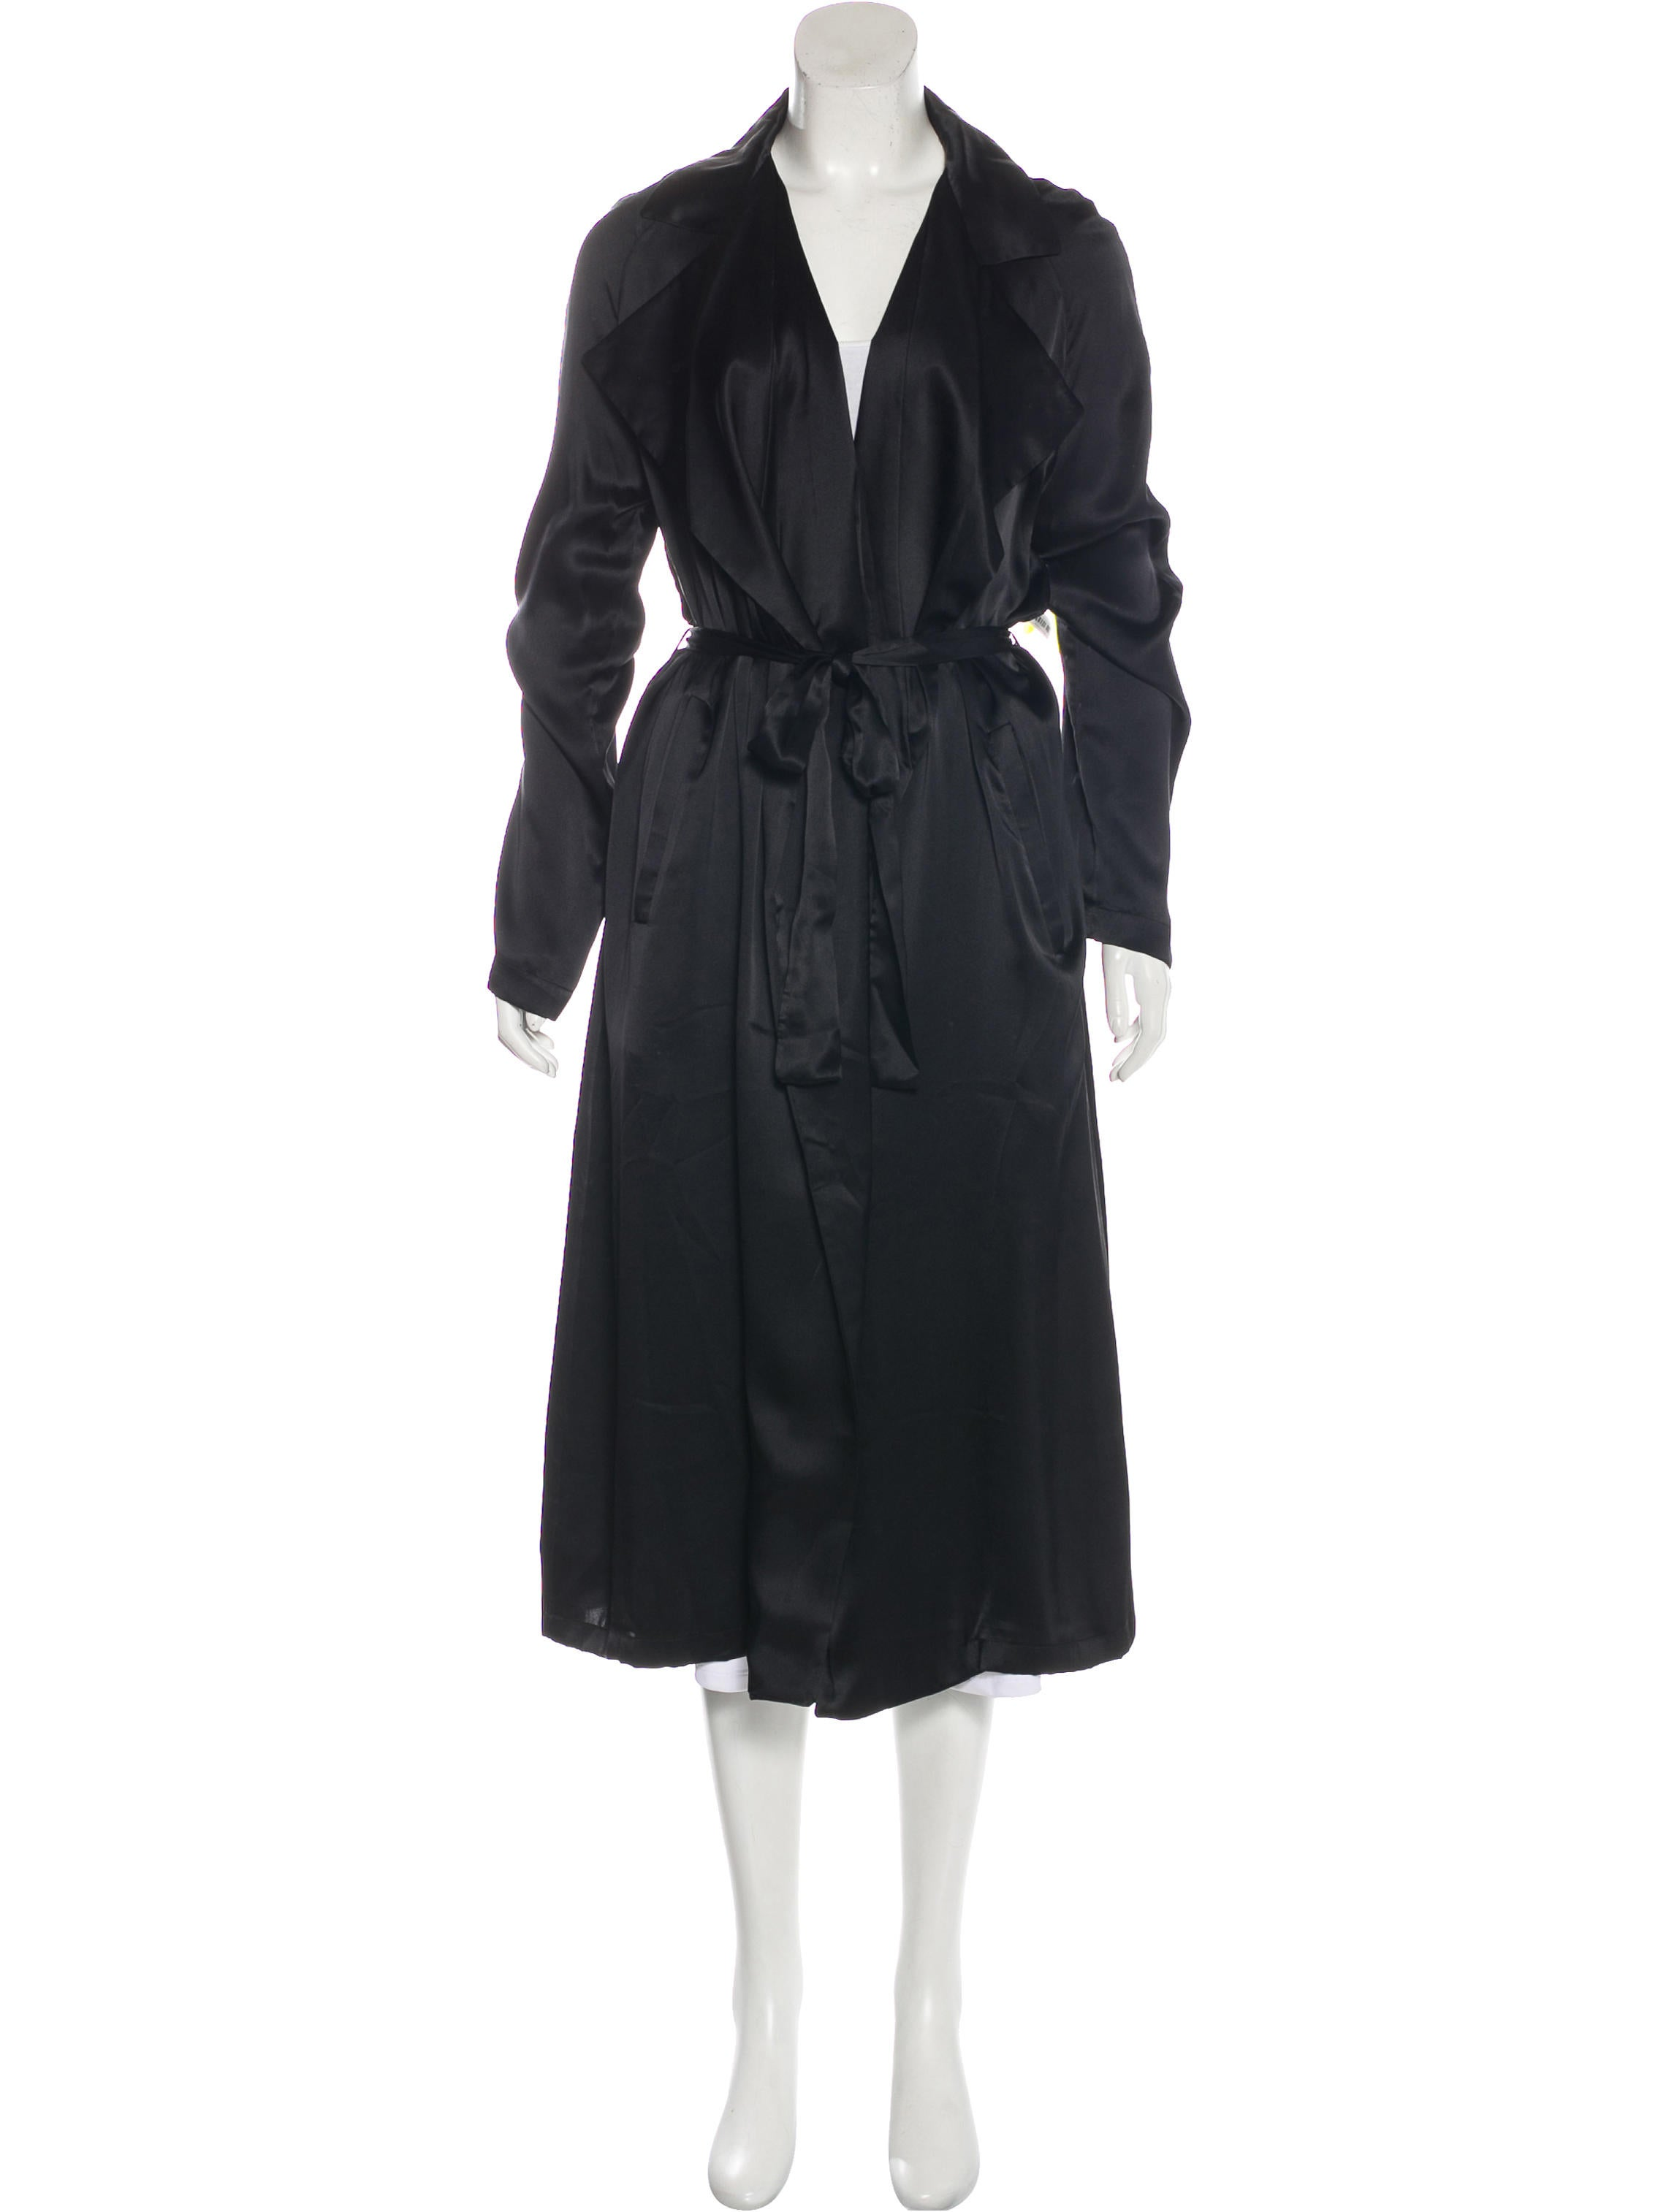 0c9ba2fcd05 we are LEONE Silk Tallulah Trench Coat w/ Tags - Clothing ...